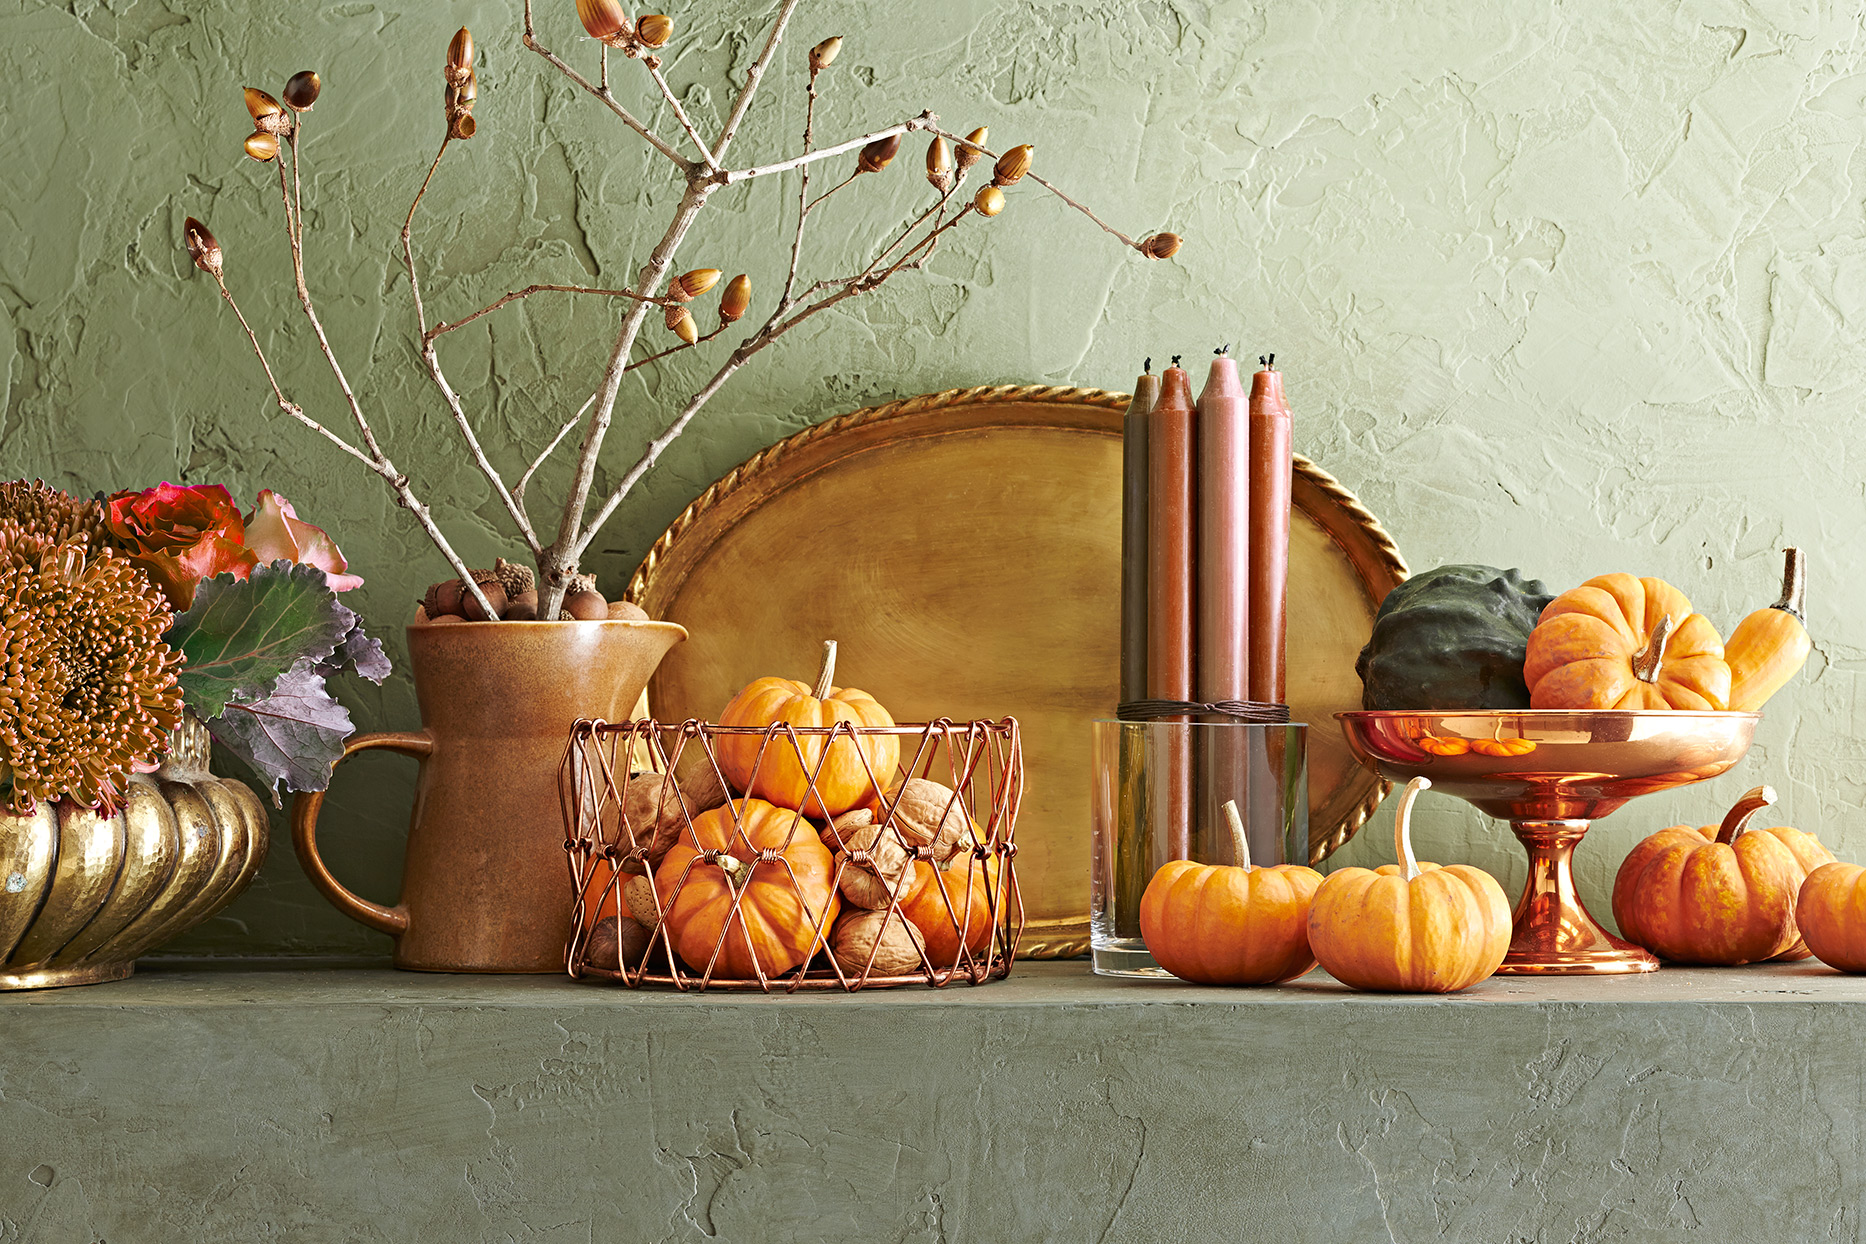 small pumpkins in classic arrangement on shelf